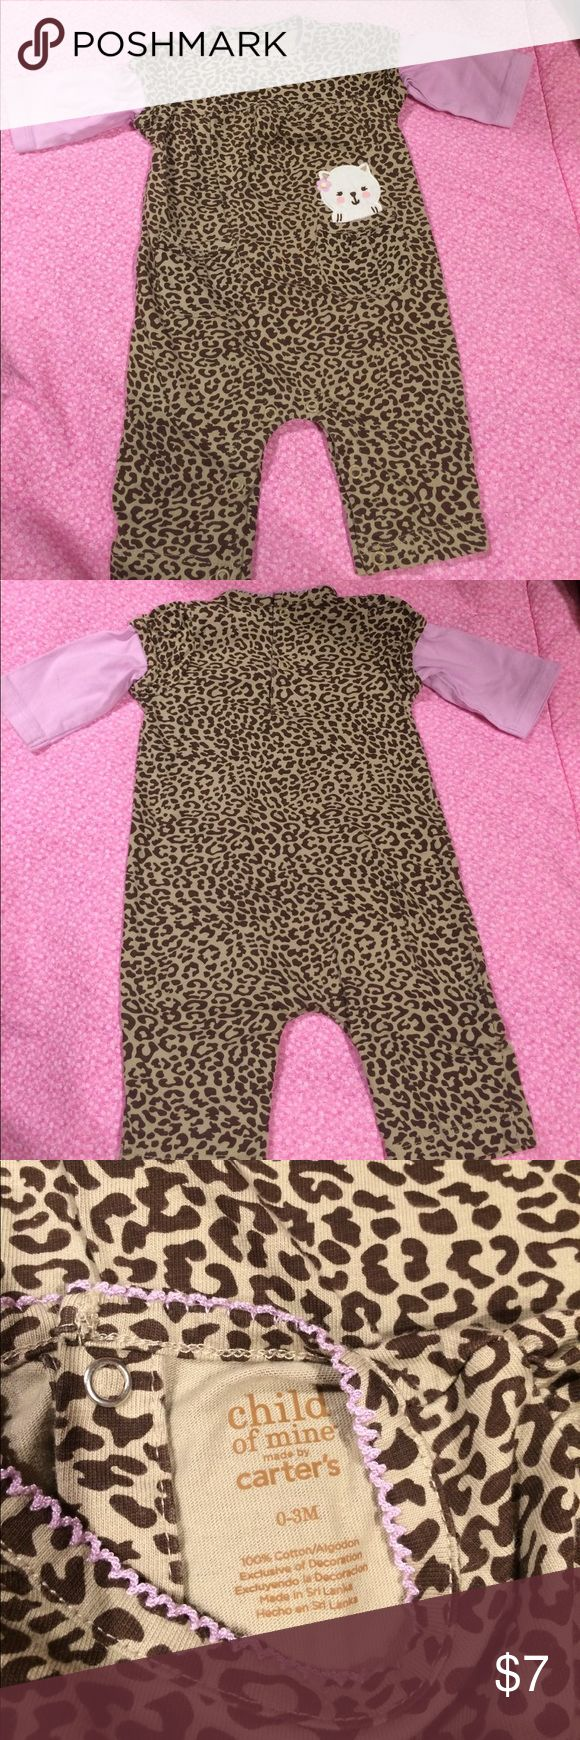 Carter's animal print one piece Never worn and in excellent condition!! Size 0-3 months. Adorable animal print one piece with 2 front pockets 💕 so cute!!! Carter's One Pieces